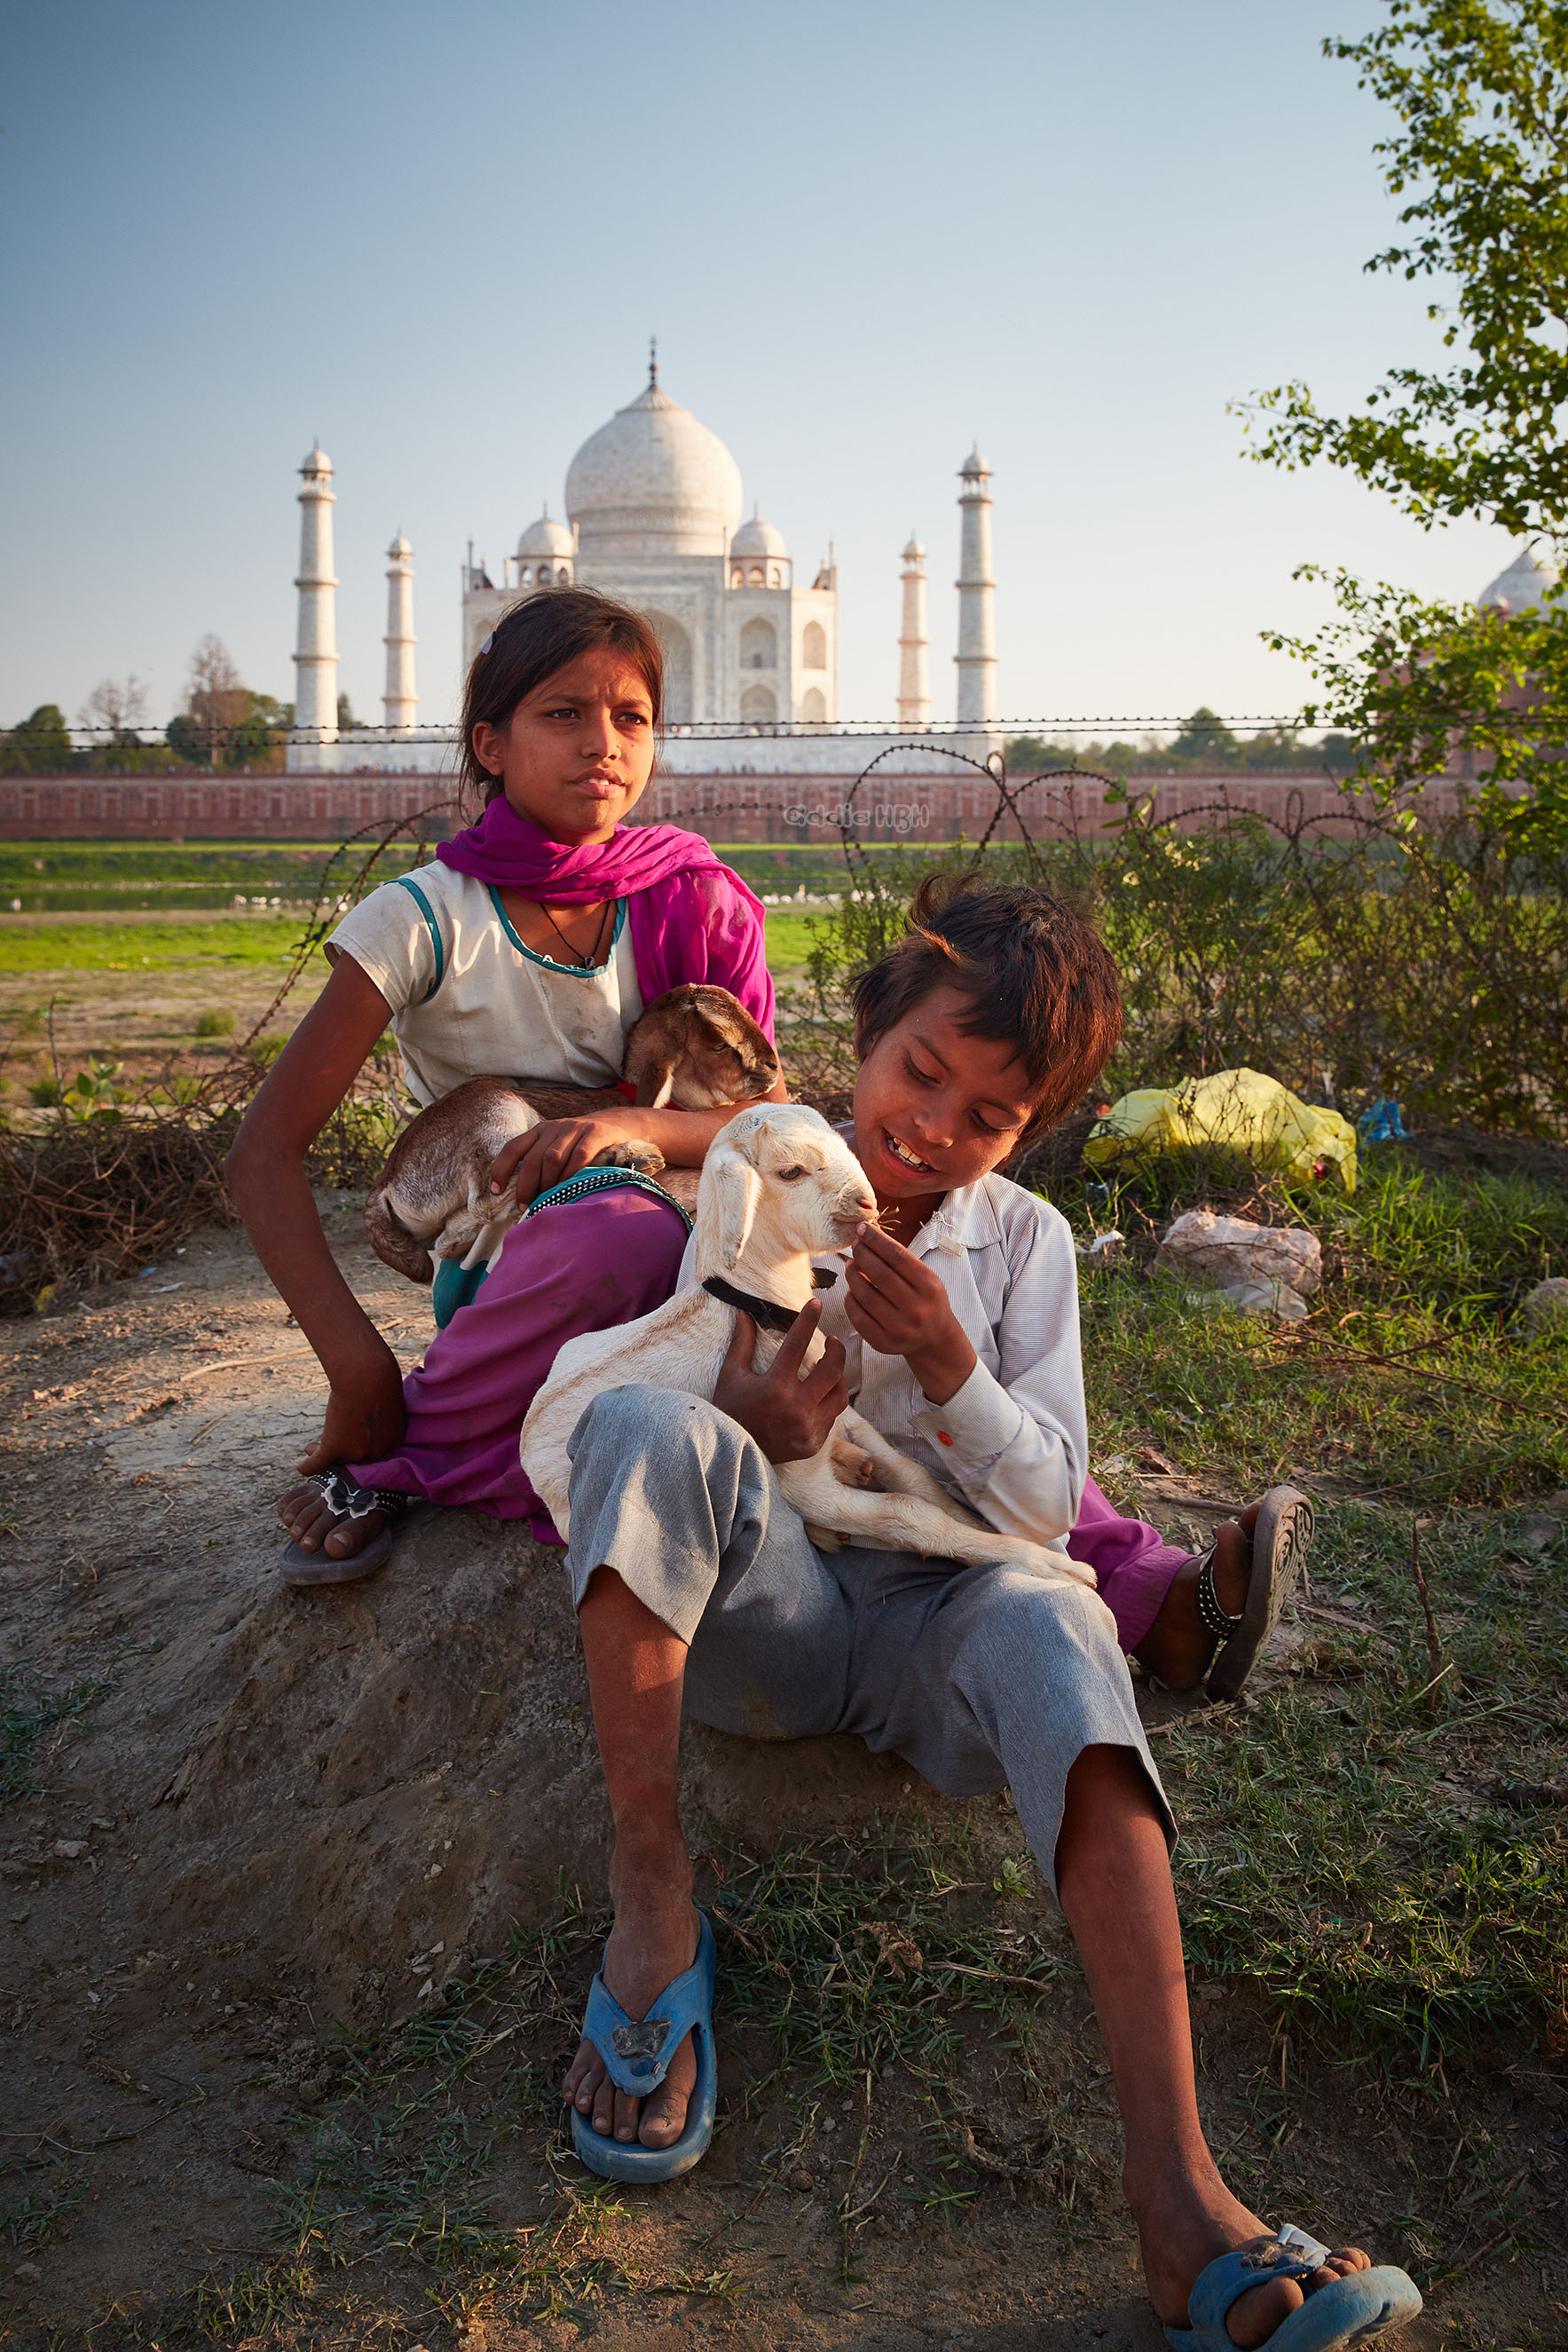 Two farmer kids play with their baby goats in Agra